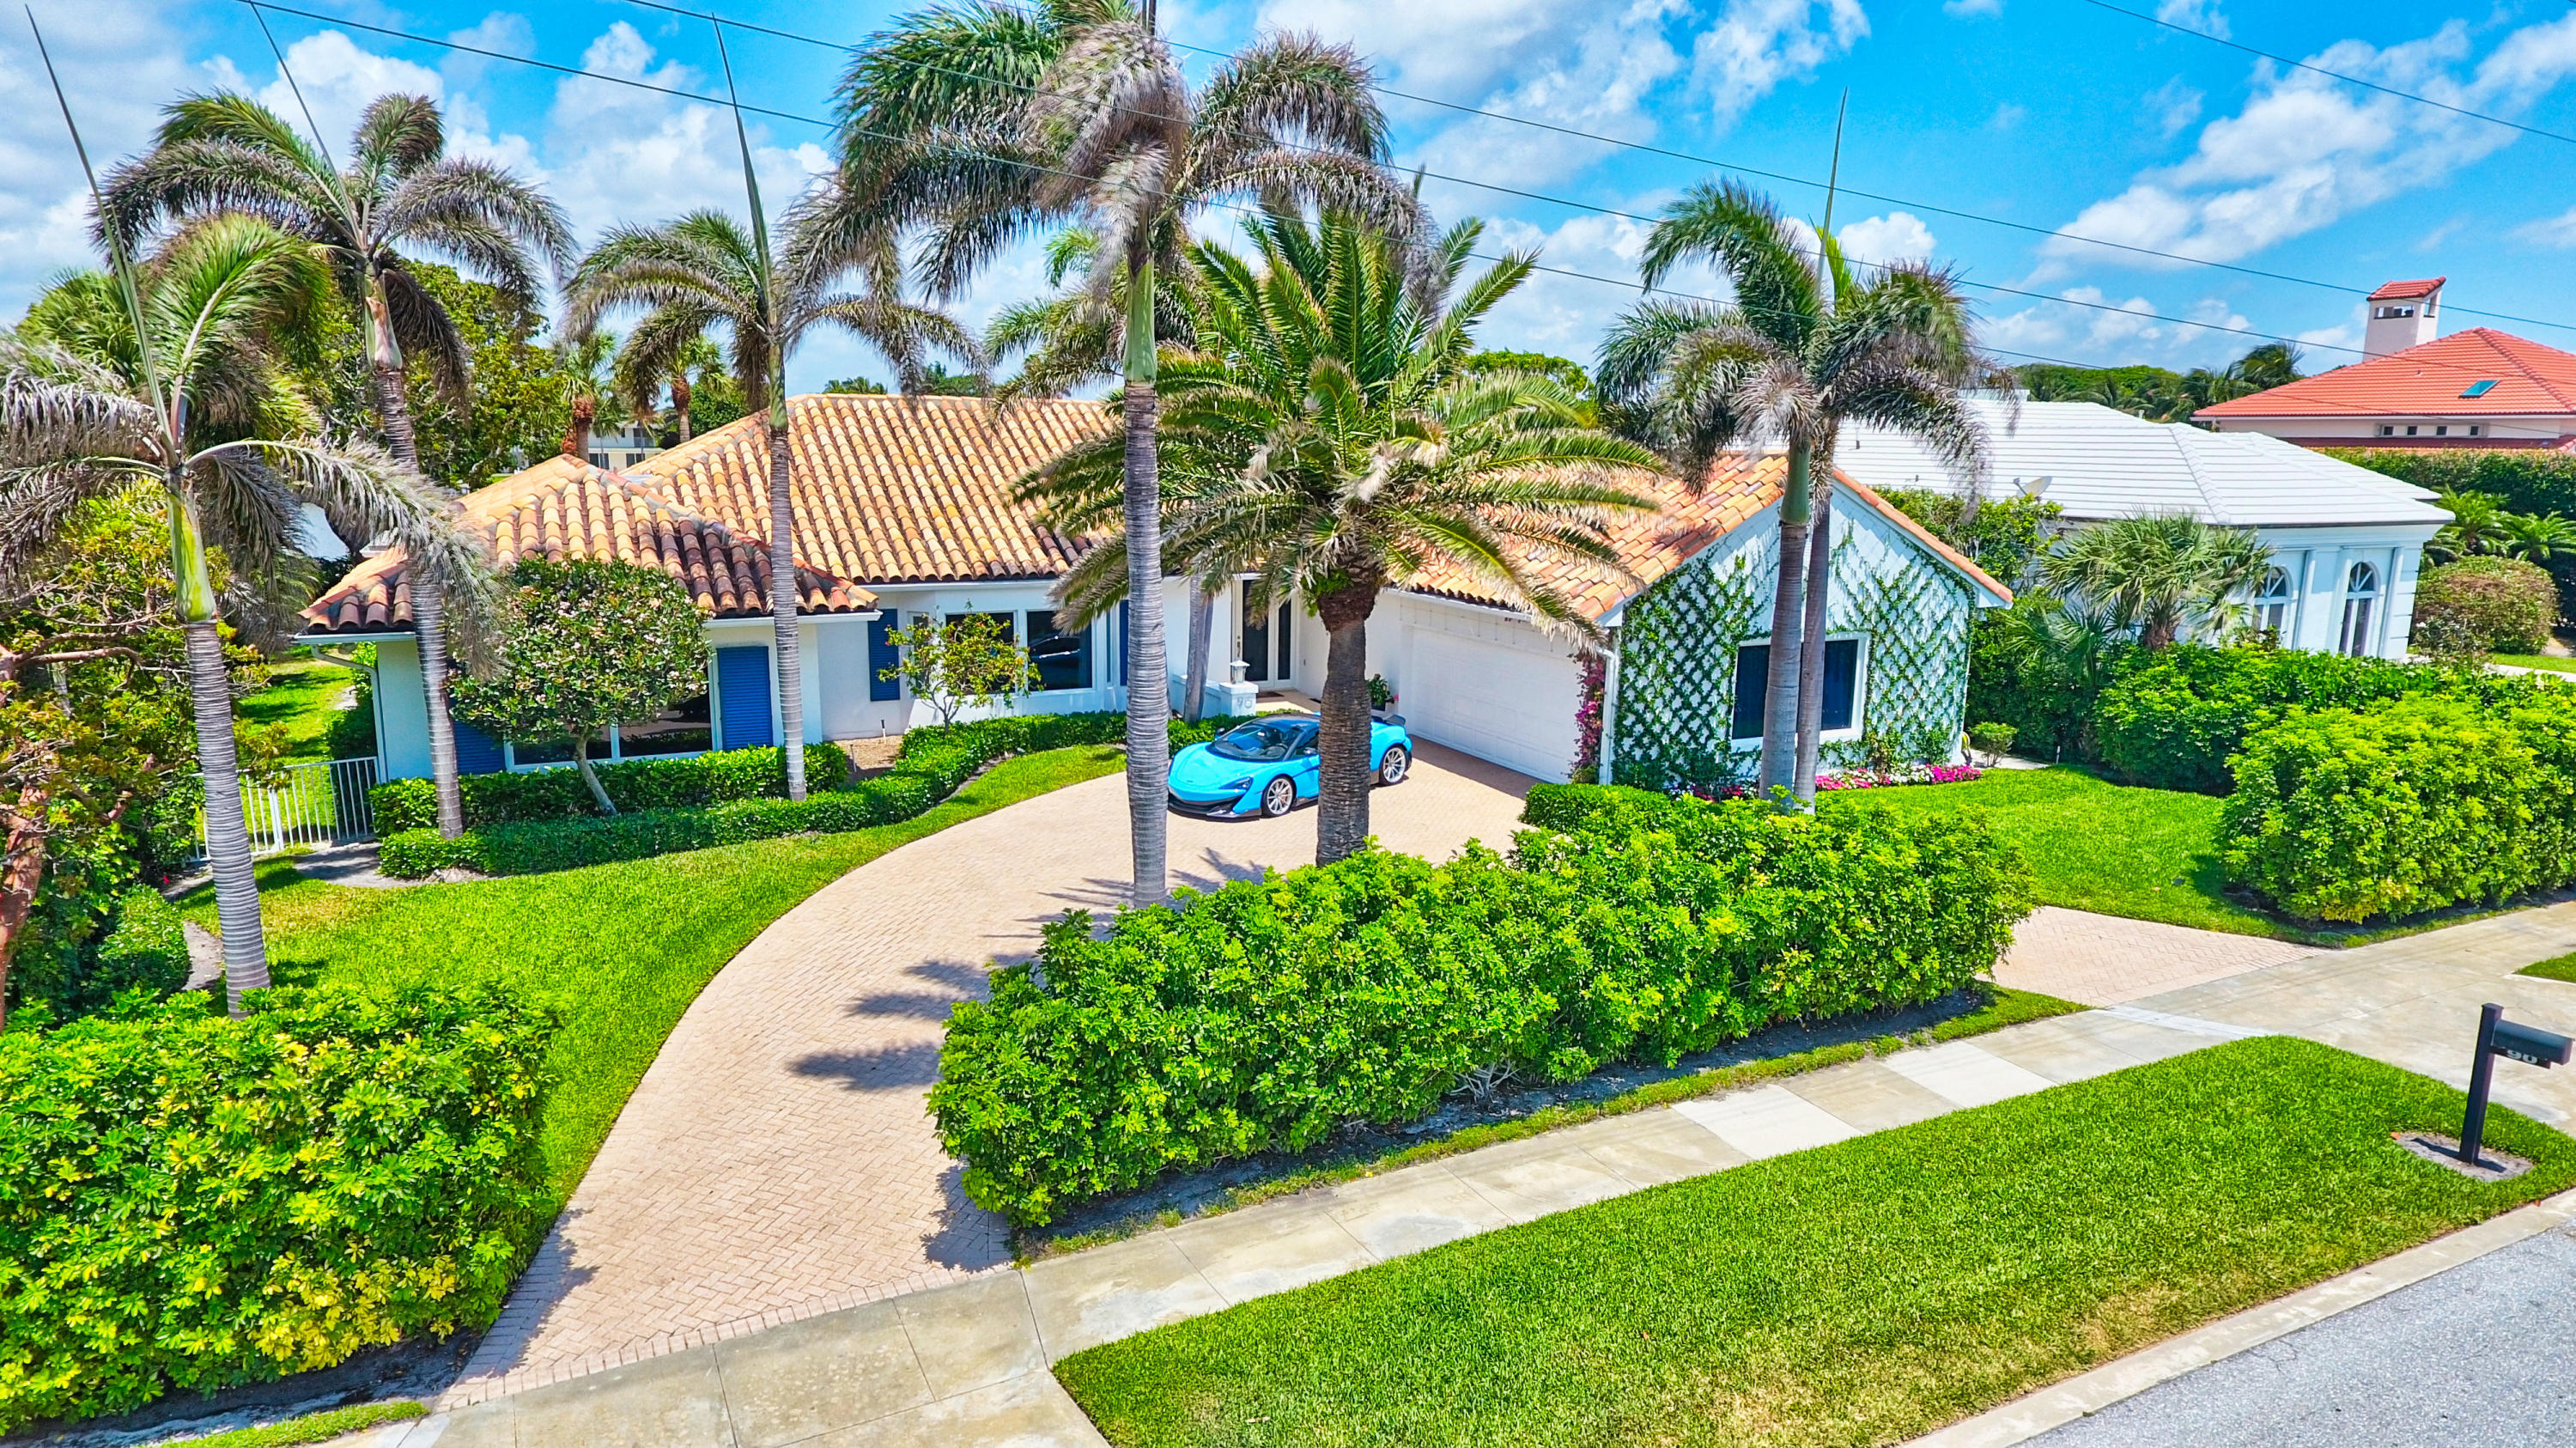 Details for 90 Spoonbill Road, Manalapan, FL 33462